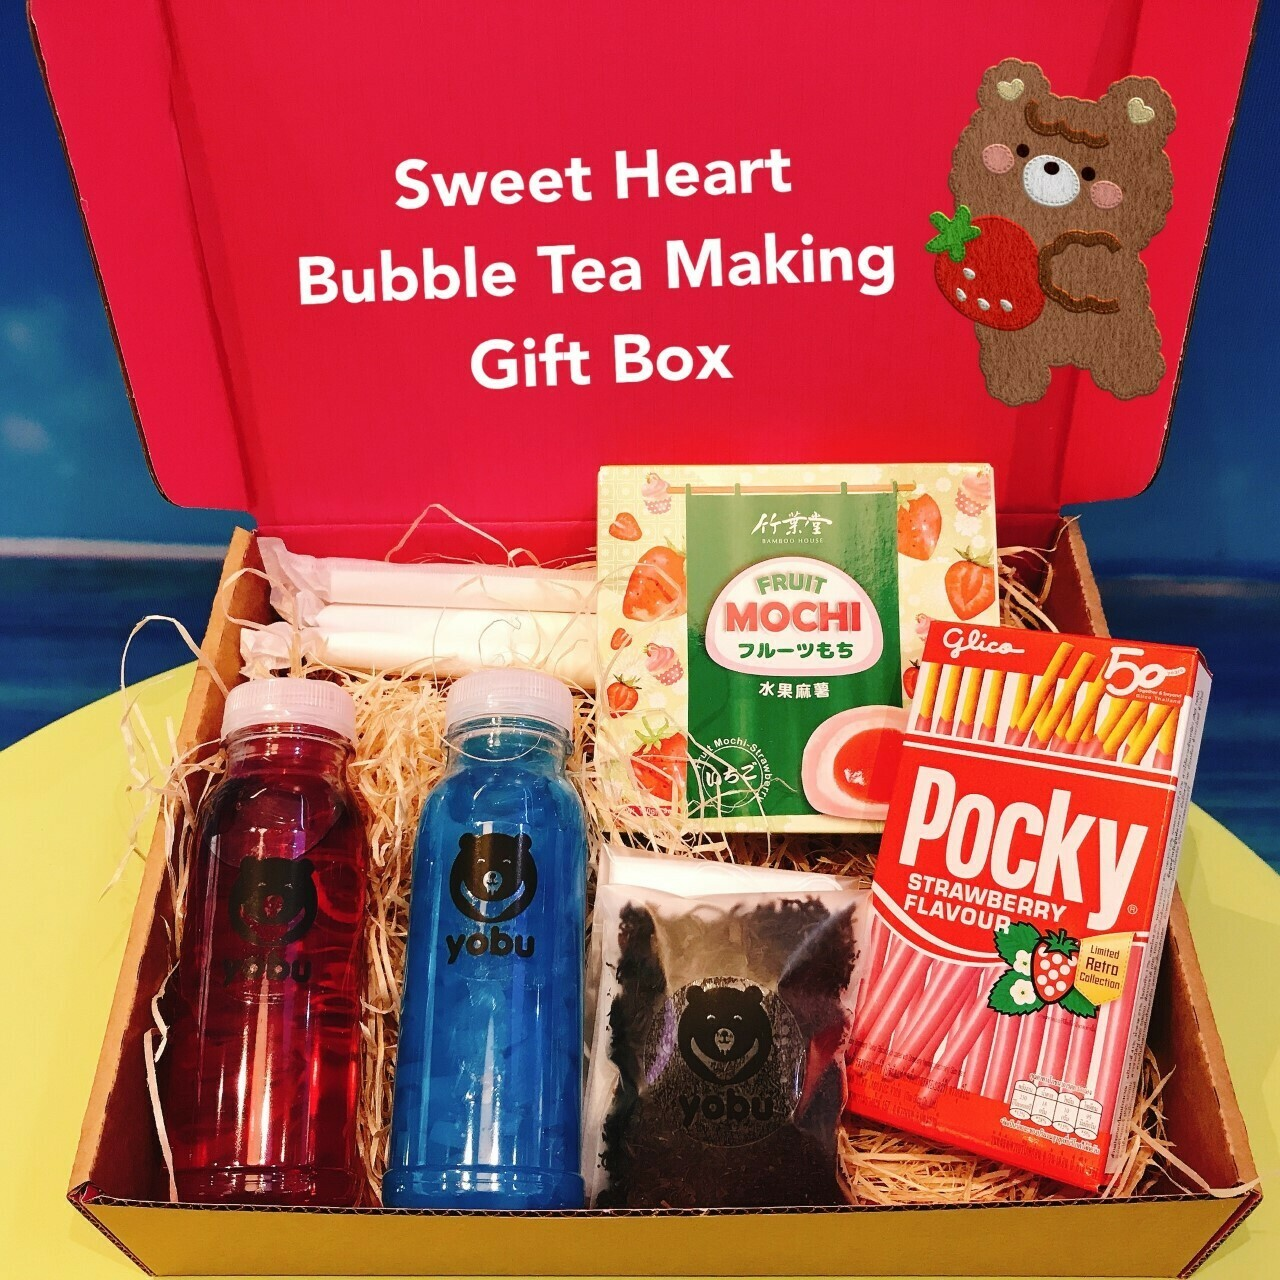 Sweet Heart Bubble Tea Making Postal Gift Box - Sweet Love Fruit Tea